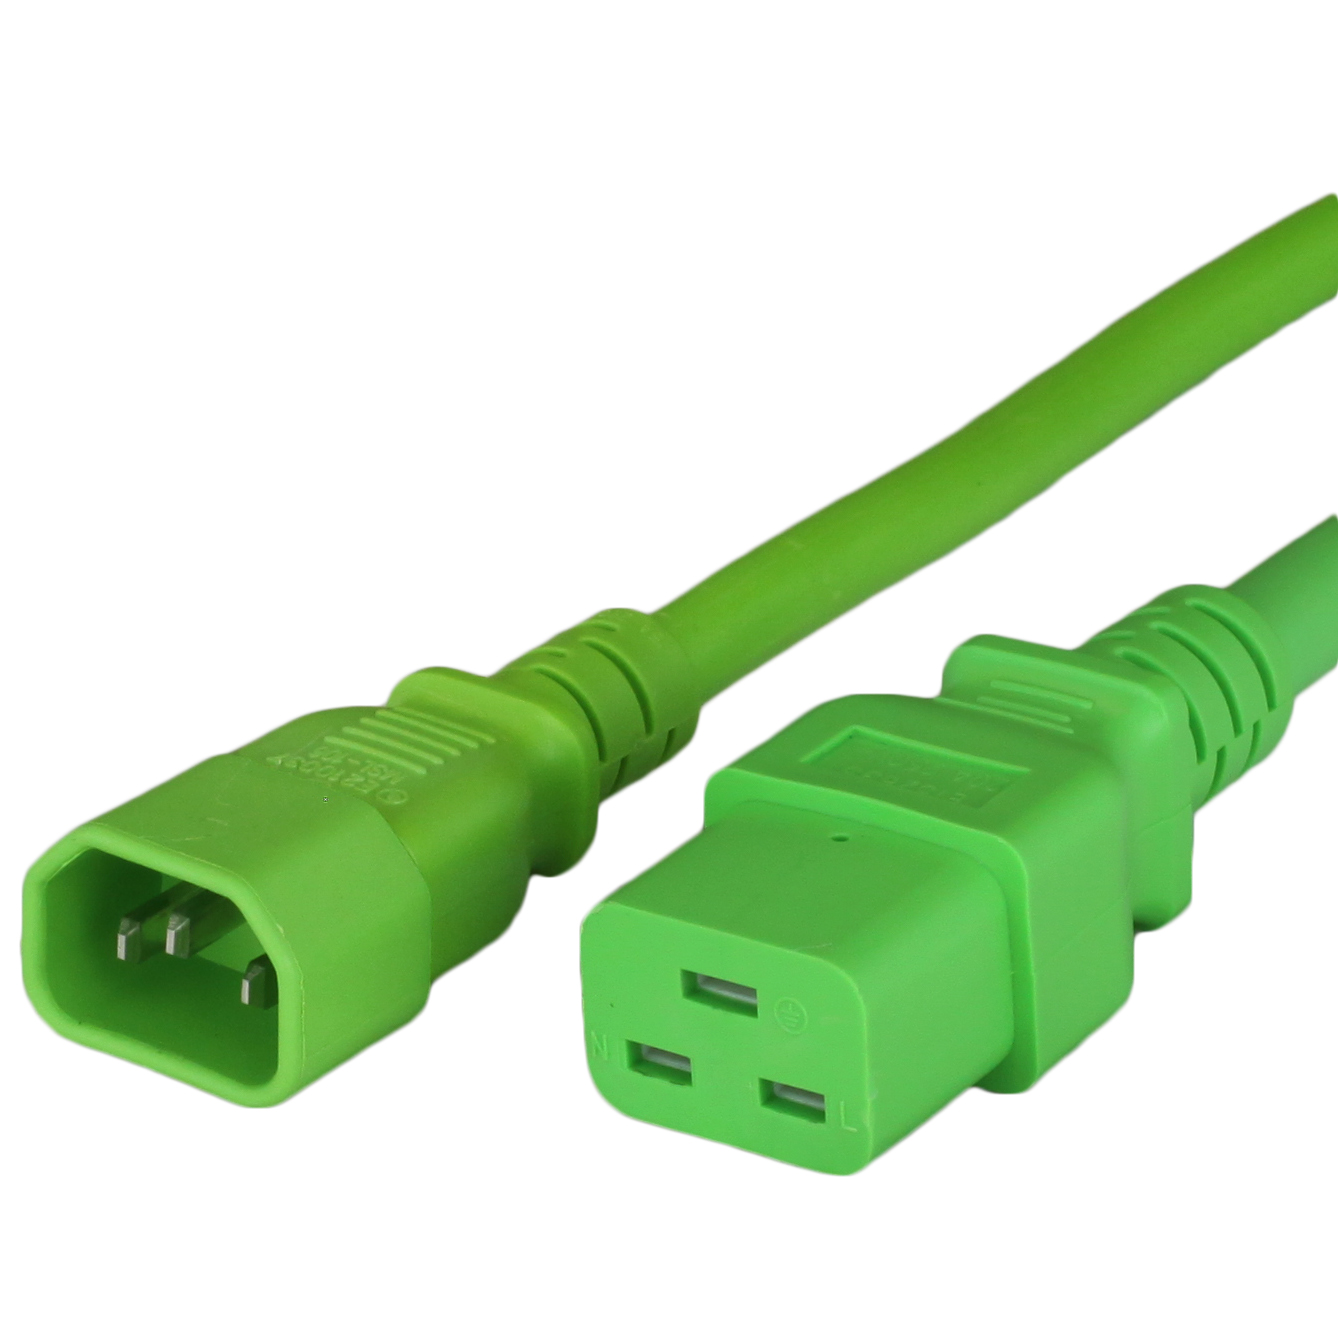 Green 15A C14 C19 Power Cords